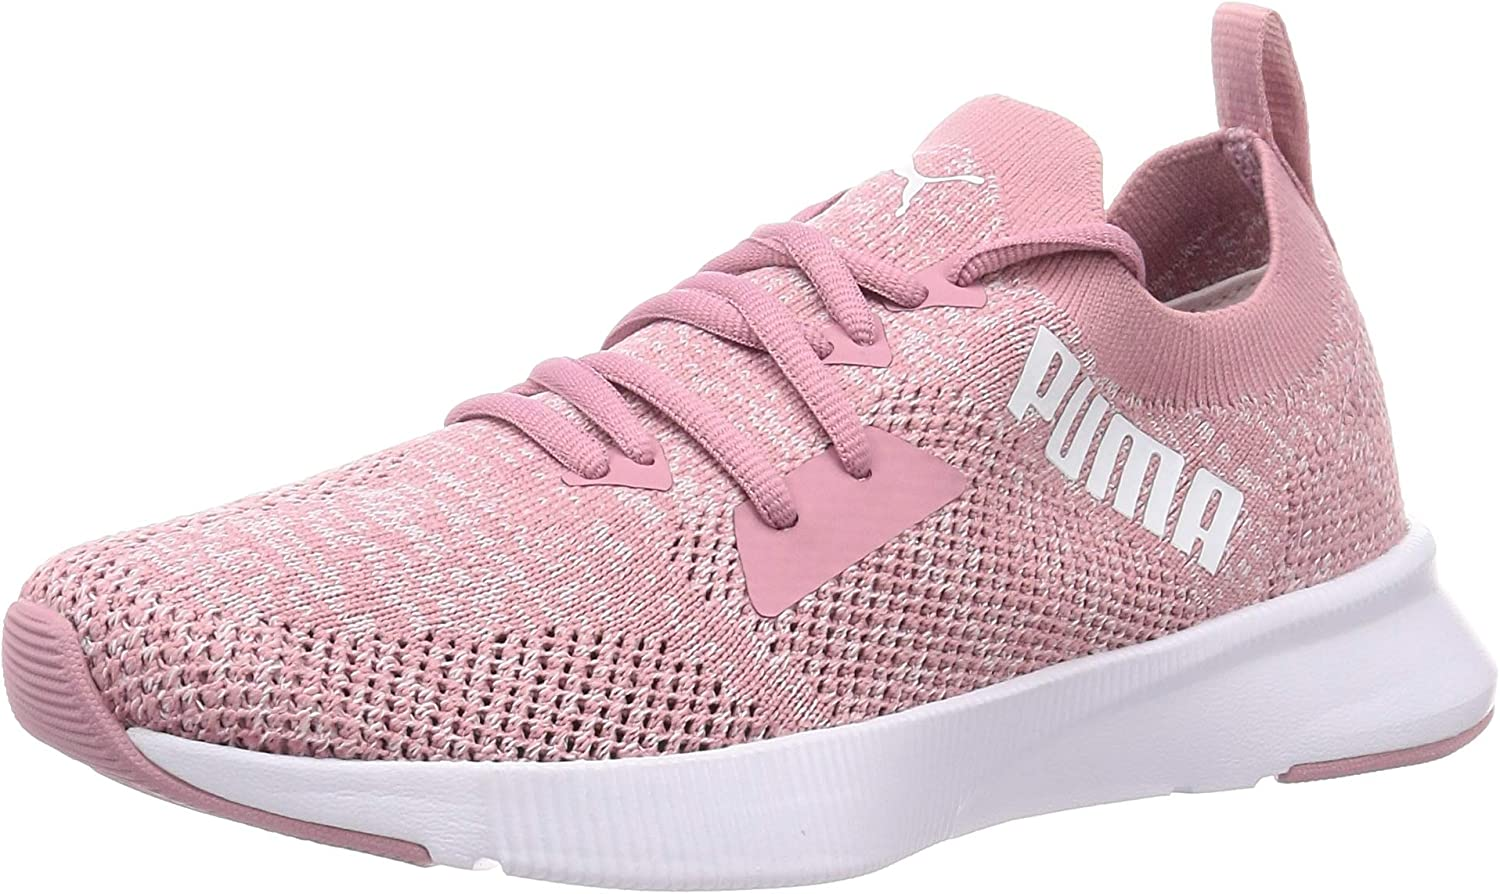 PUMA Flyer Runner Engineer Knit WN, Zapatillas de Running Mujer: Amazon.es: Zapatos y complementos